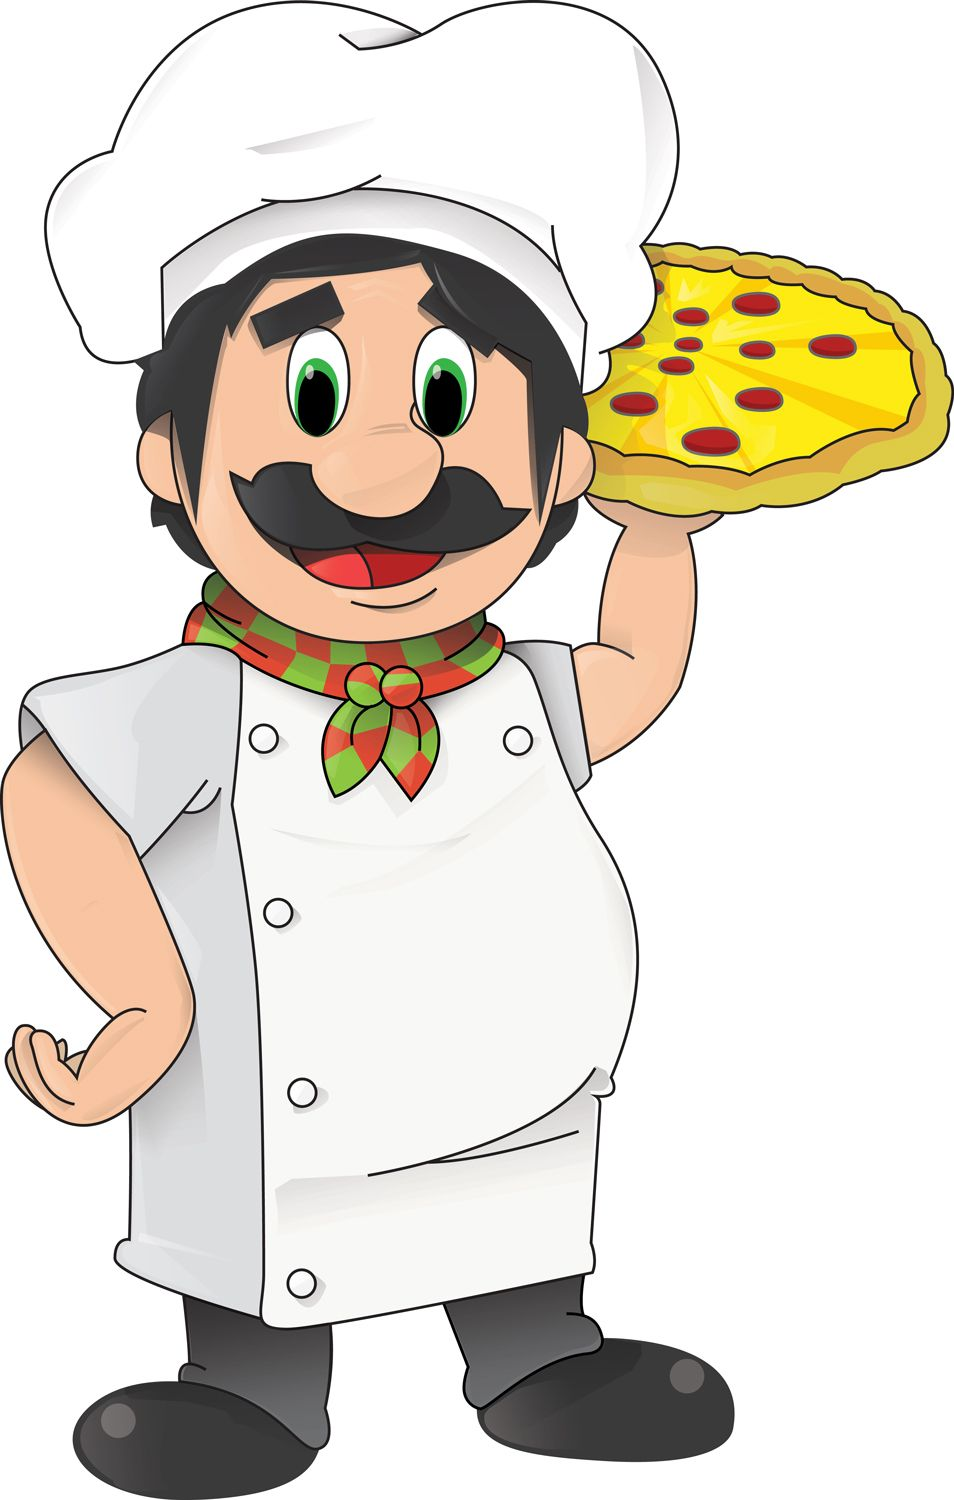 Wood Fired Pizza Clipart Images Gallery Stickman Mario Pizzaiolo Pic Chef 1 Pizzas Rh Com